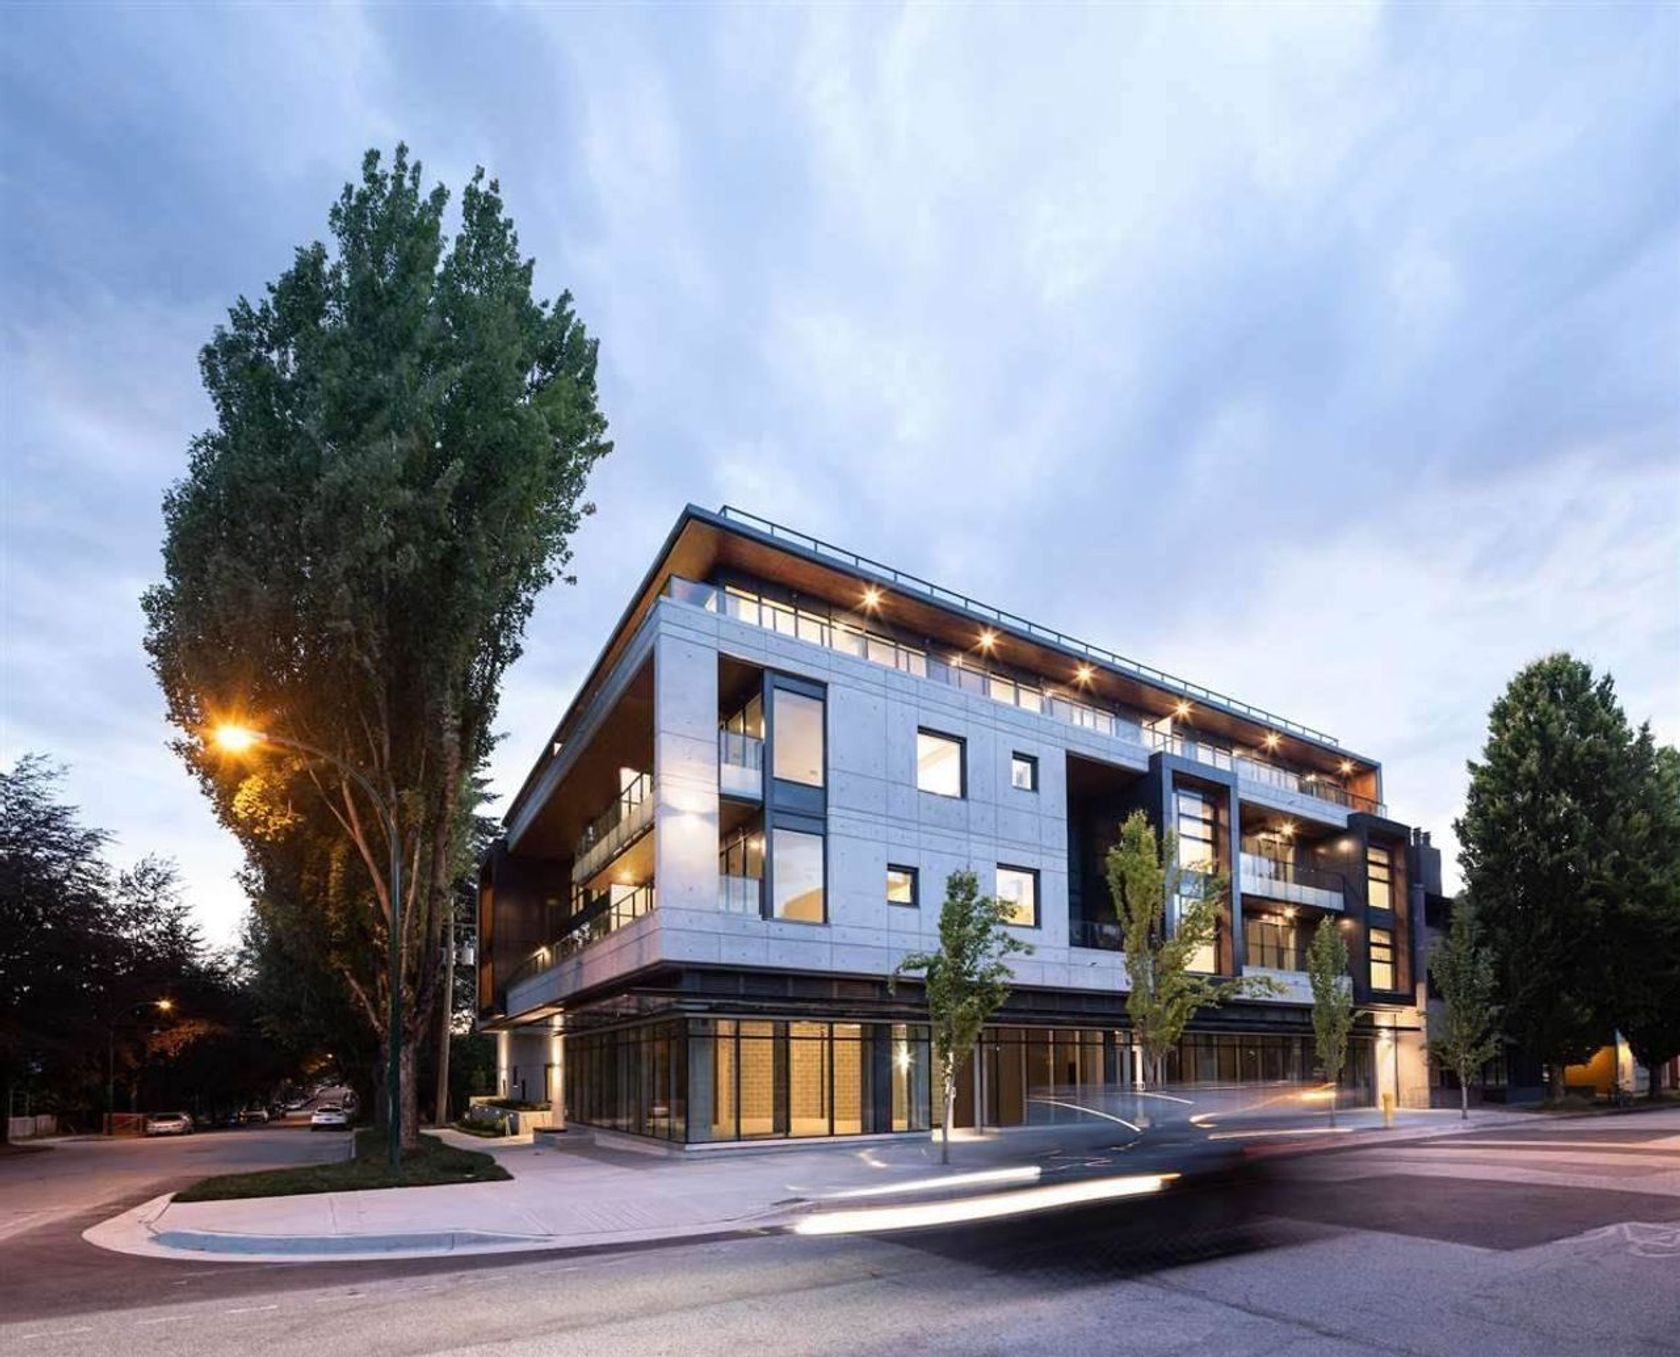 717-w-17th-avenue-cambie-vancouver-west-16 at 301 - 717 W 17th Avenue, Cambie, Vancouver West